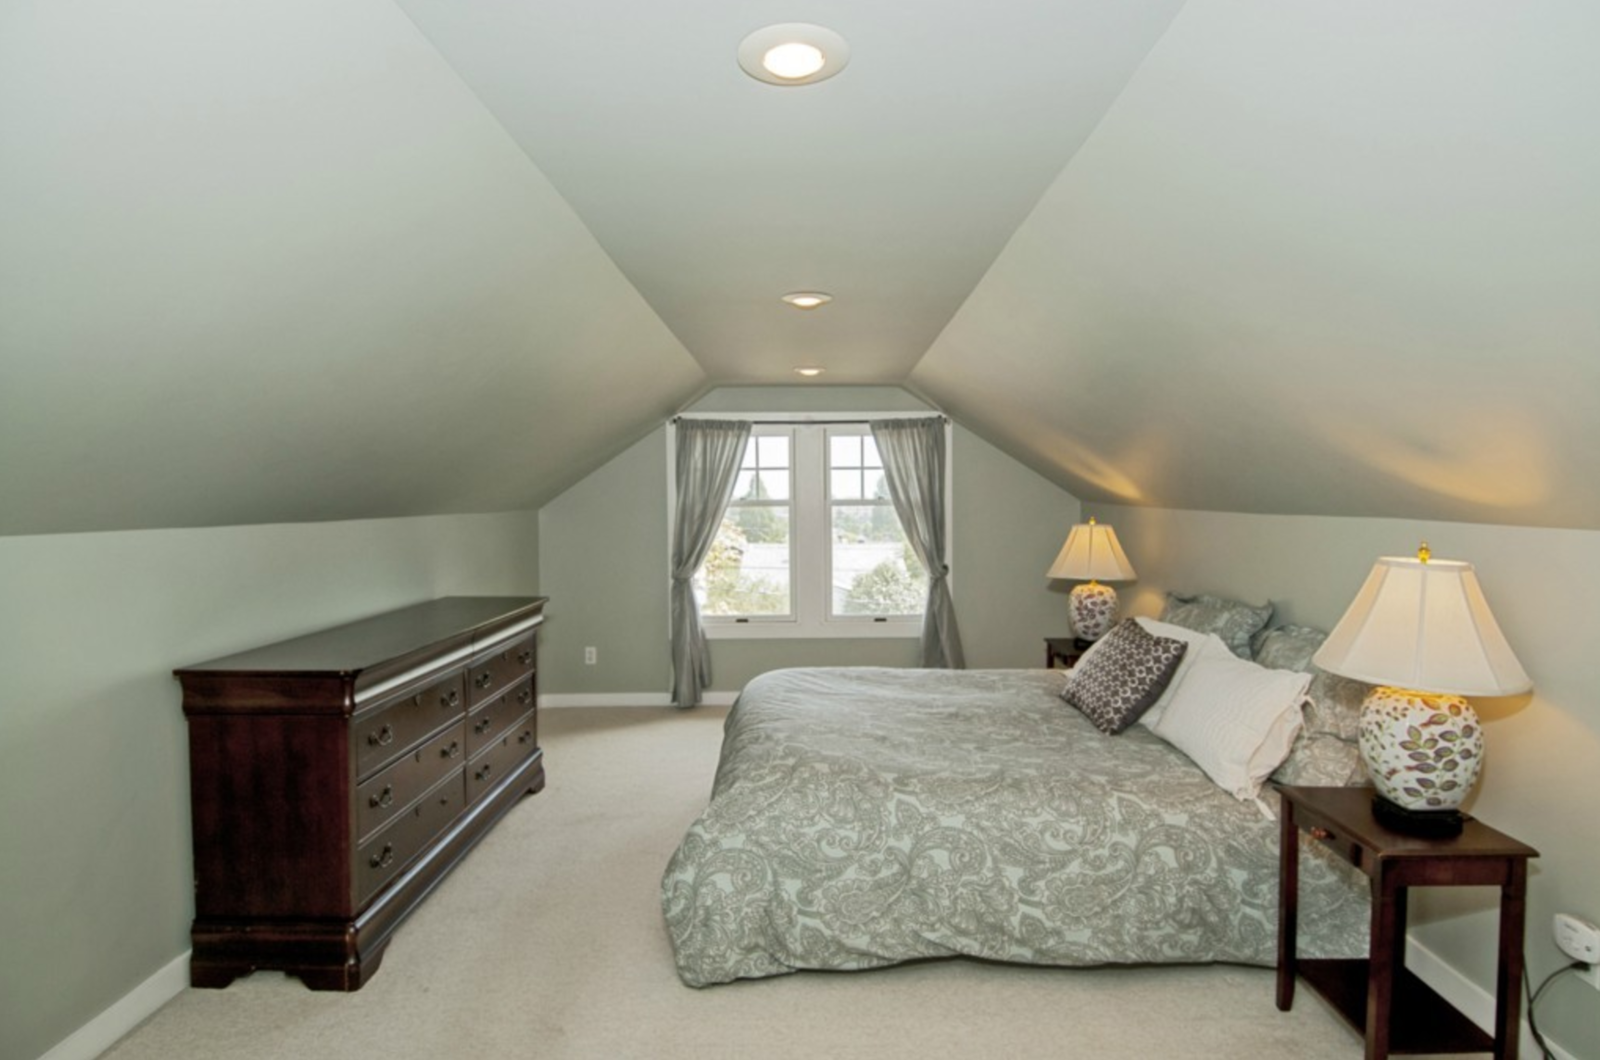 Wallingford Master Suite and Nursery by Casework